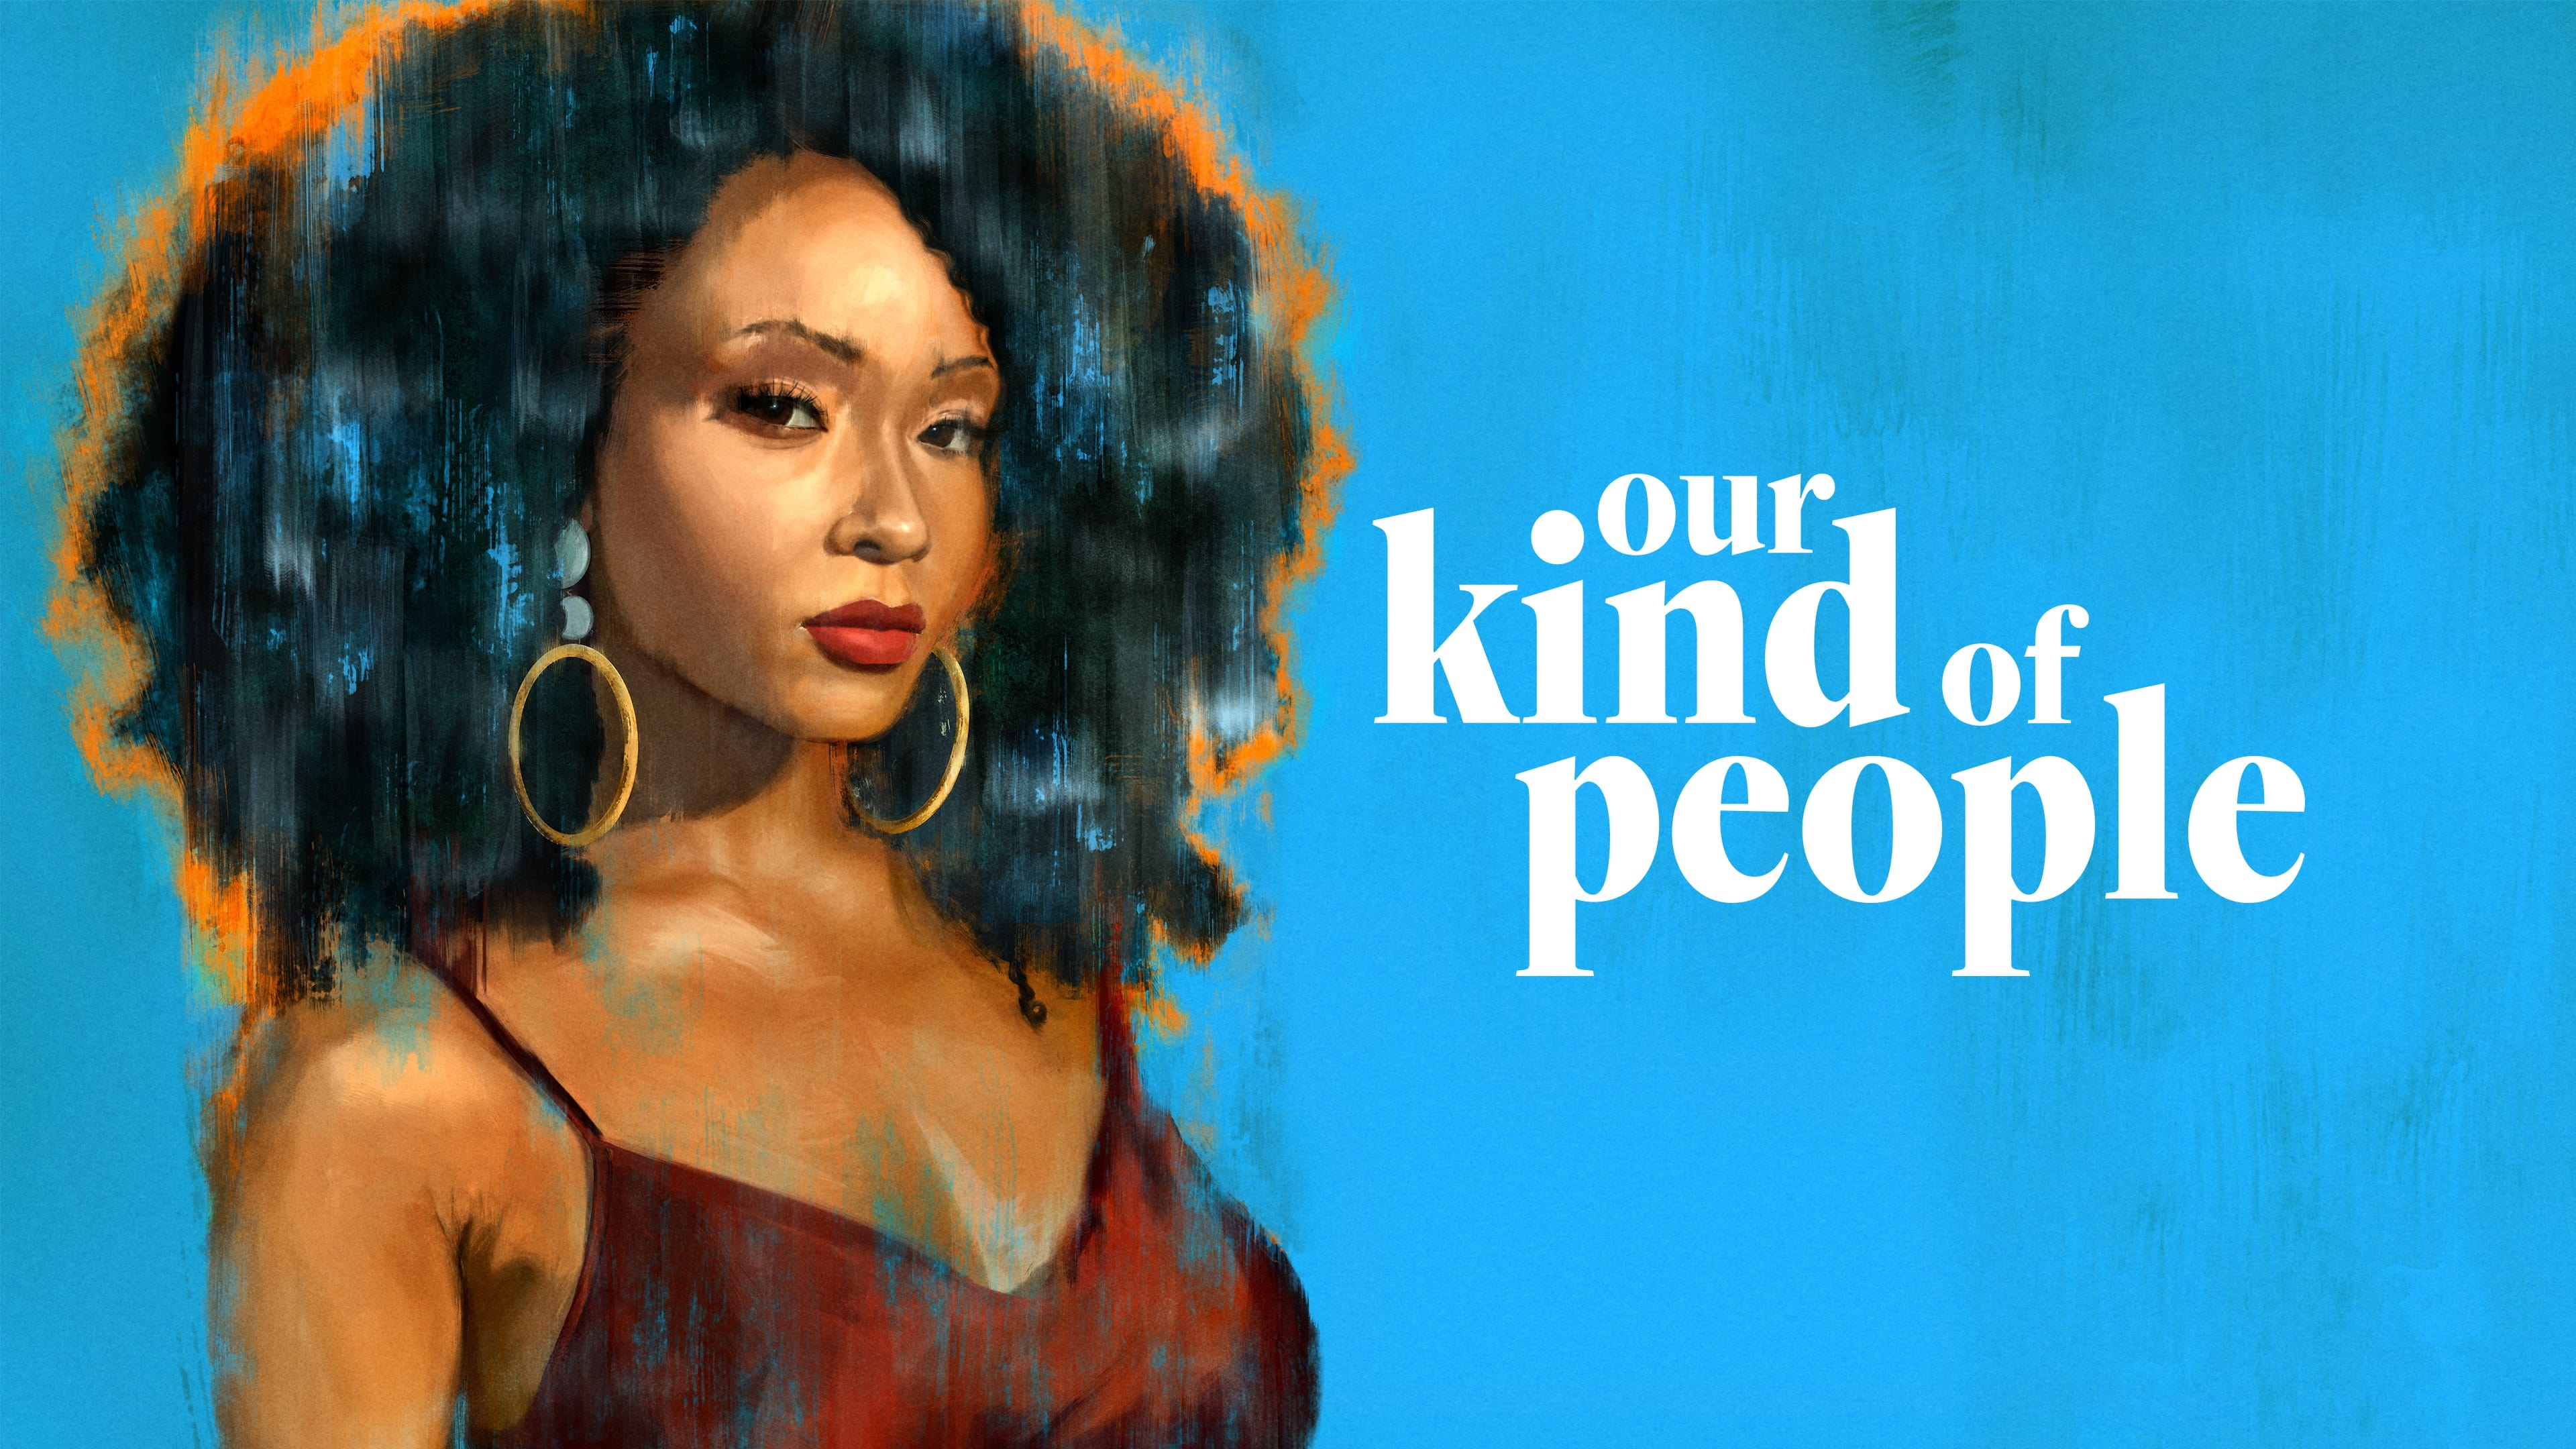 Our Kind of People